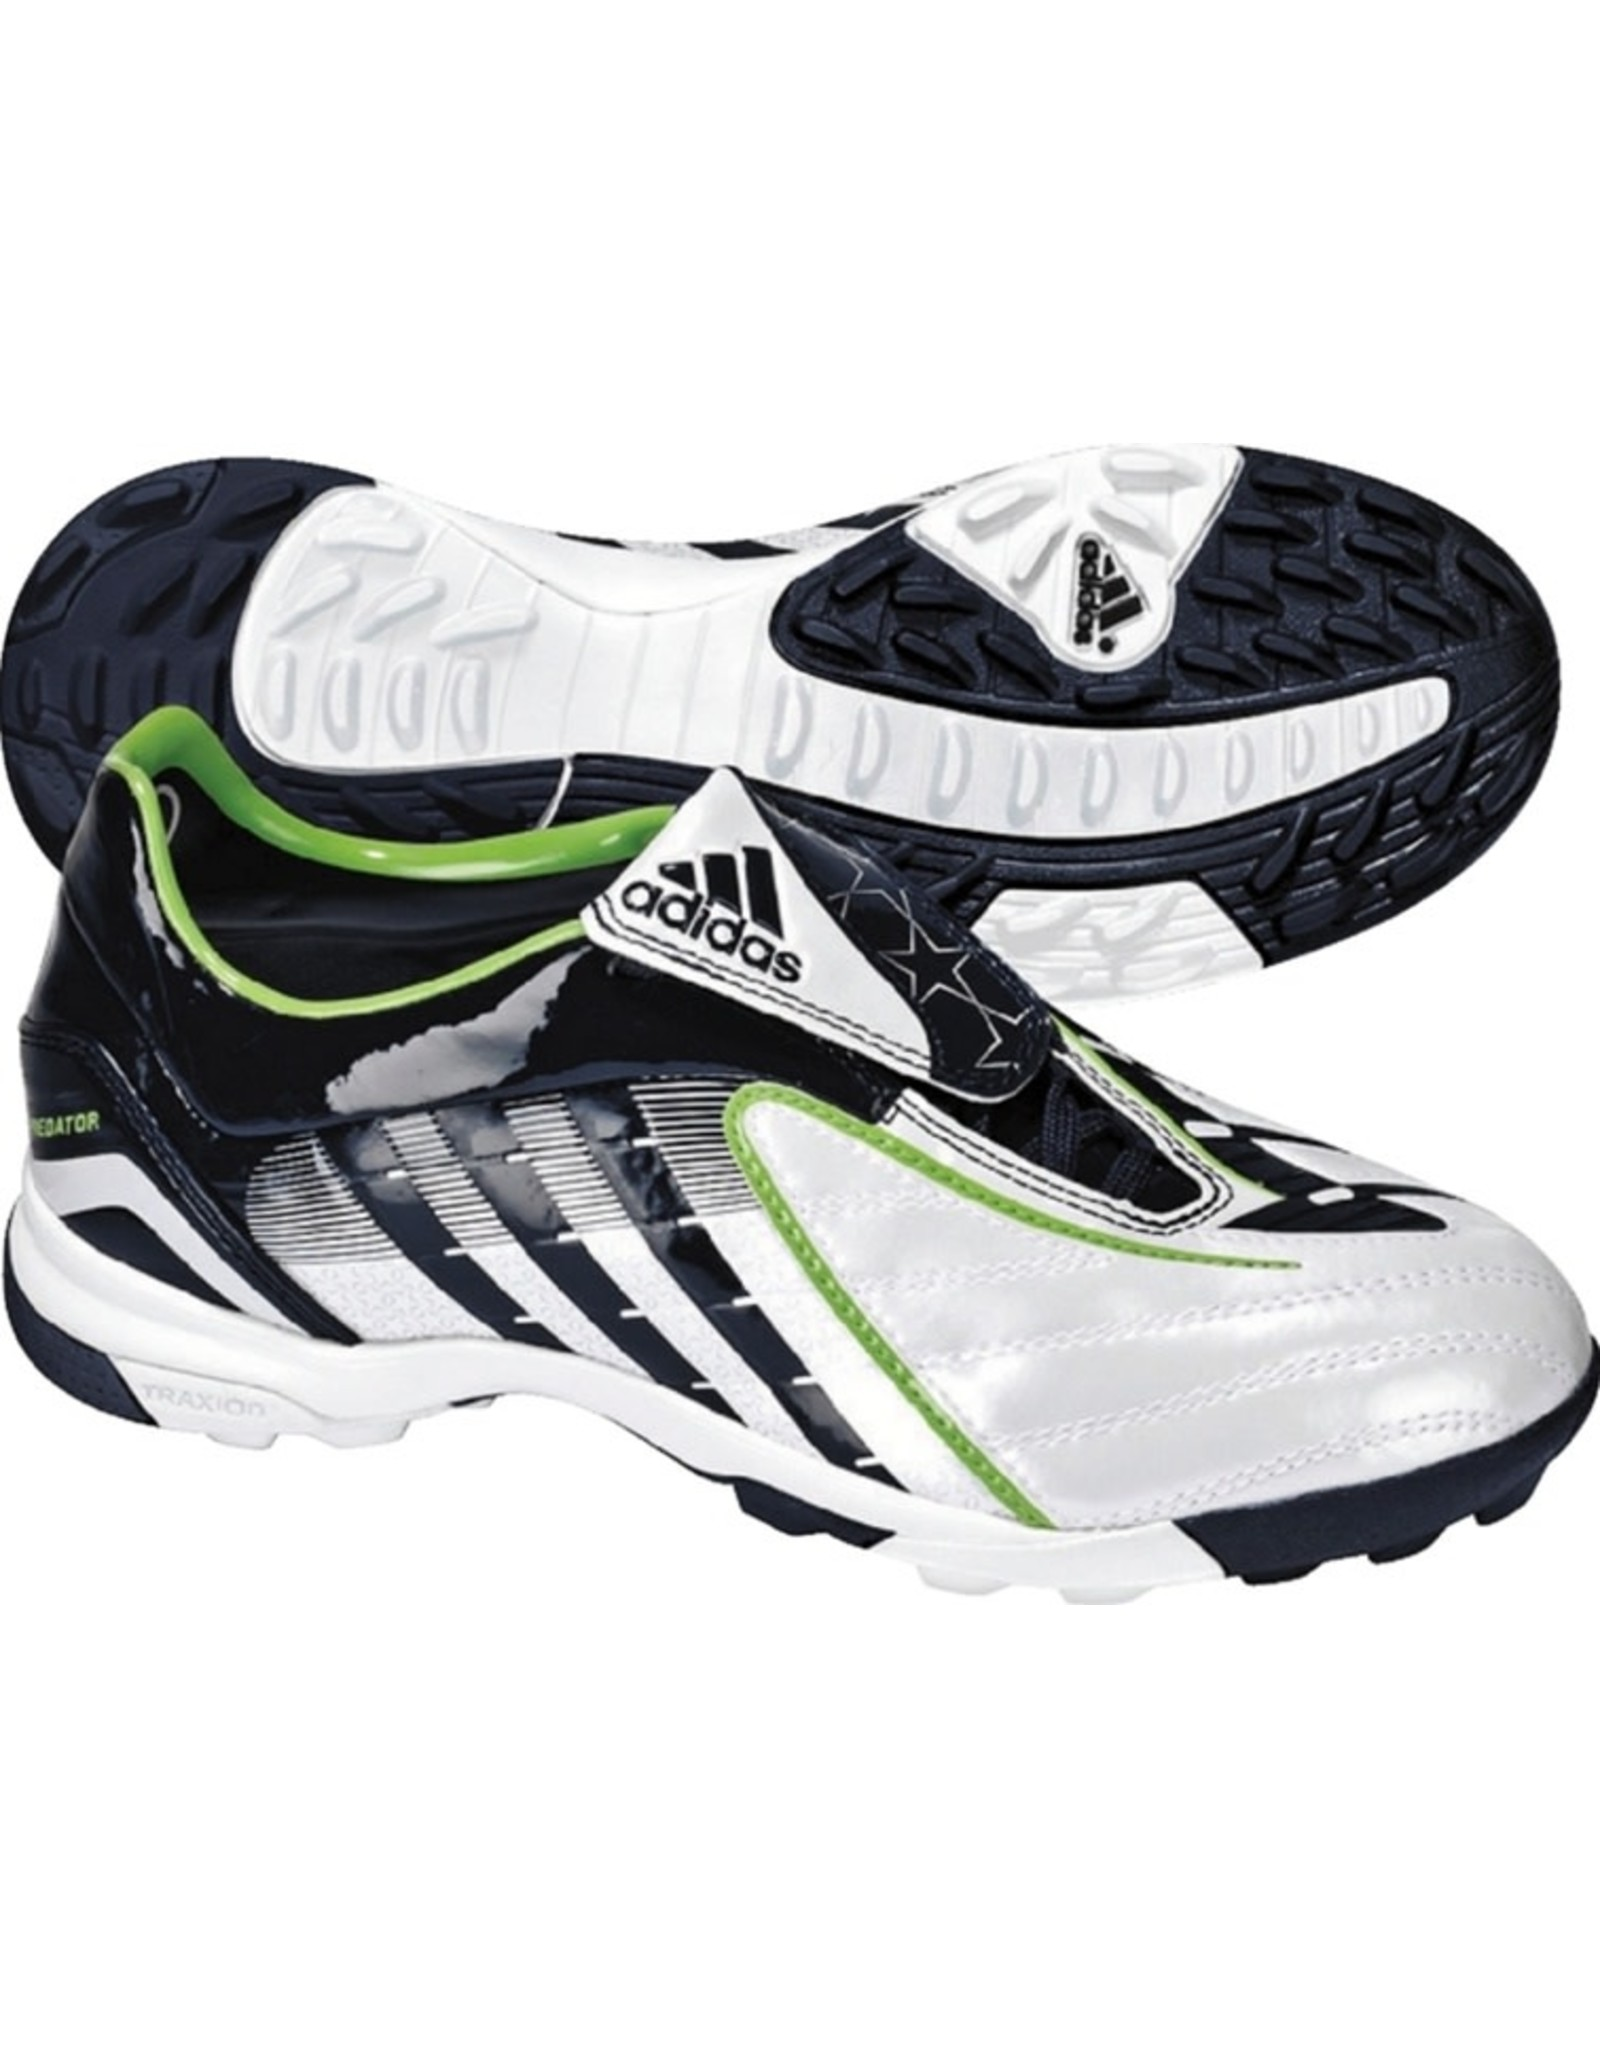 Adidas Adidas Absol PS TRX TF Junior Shoes